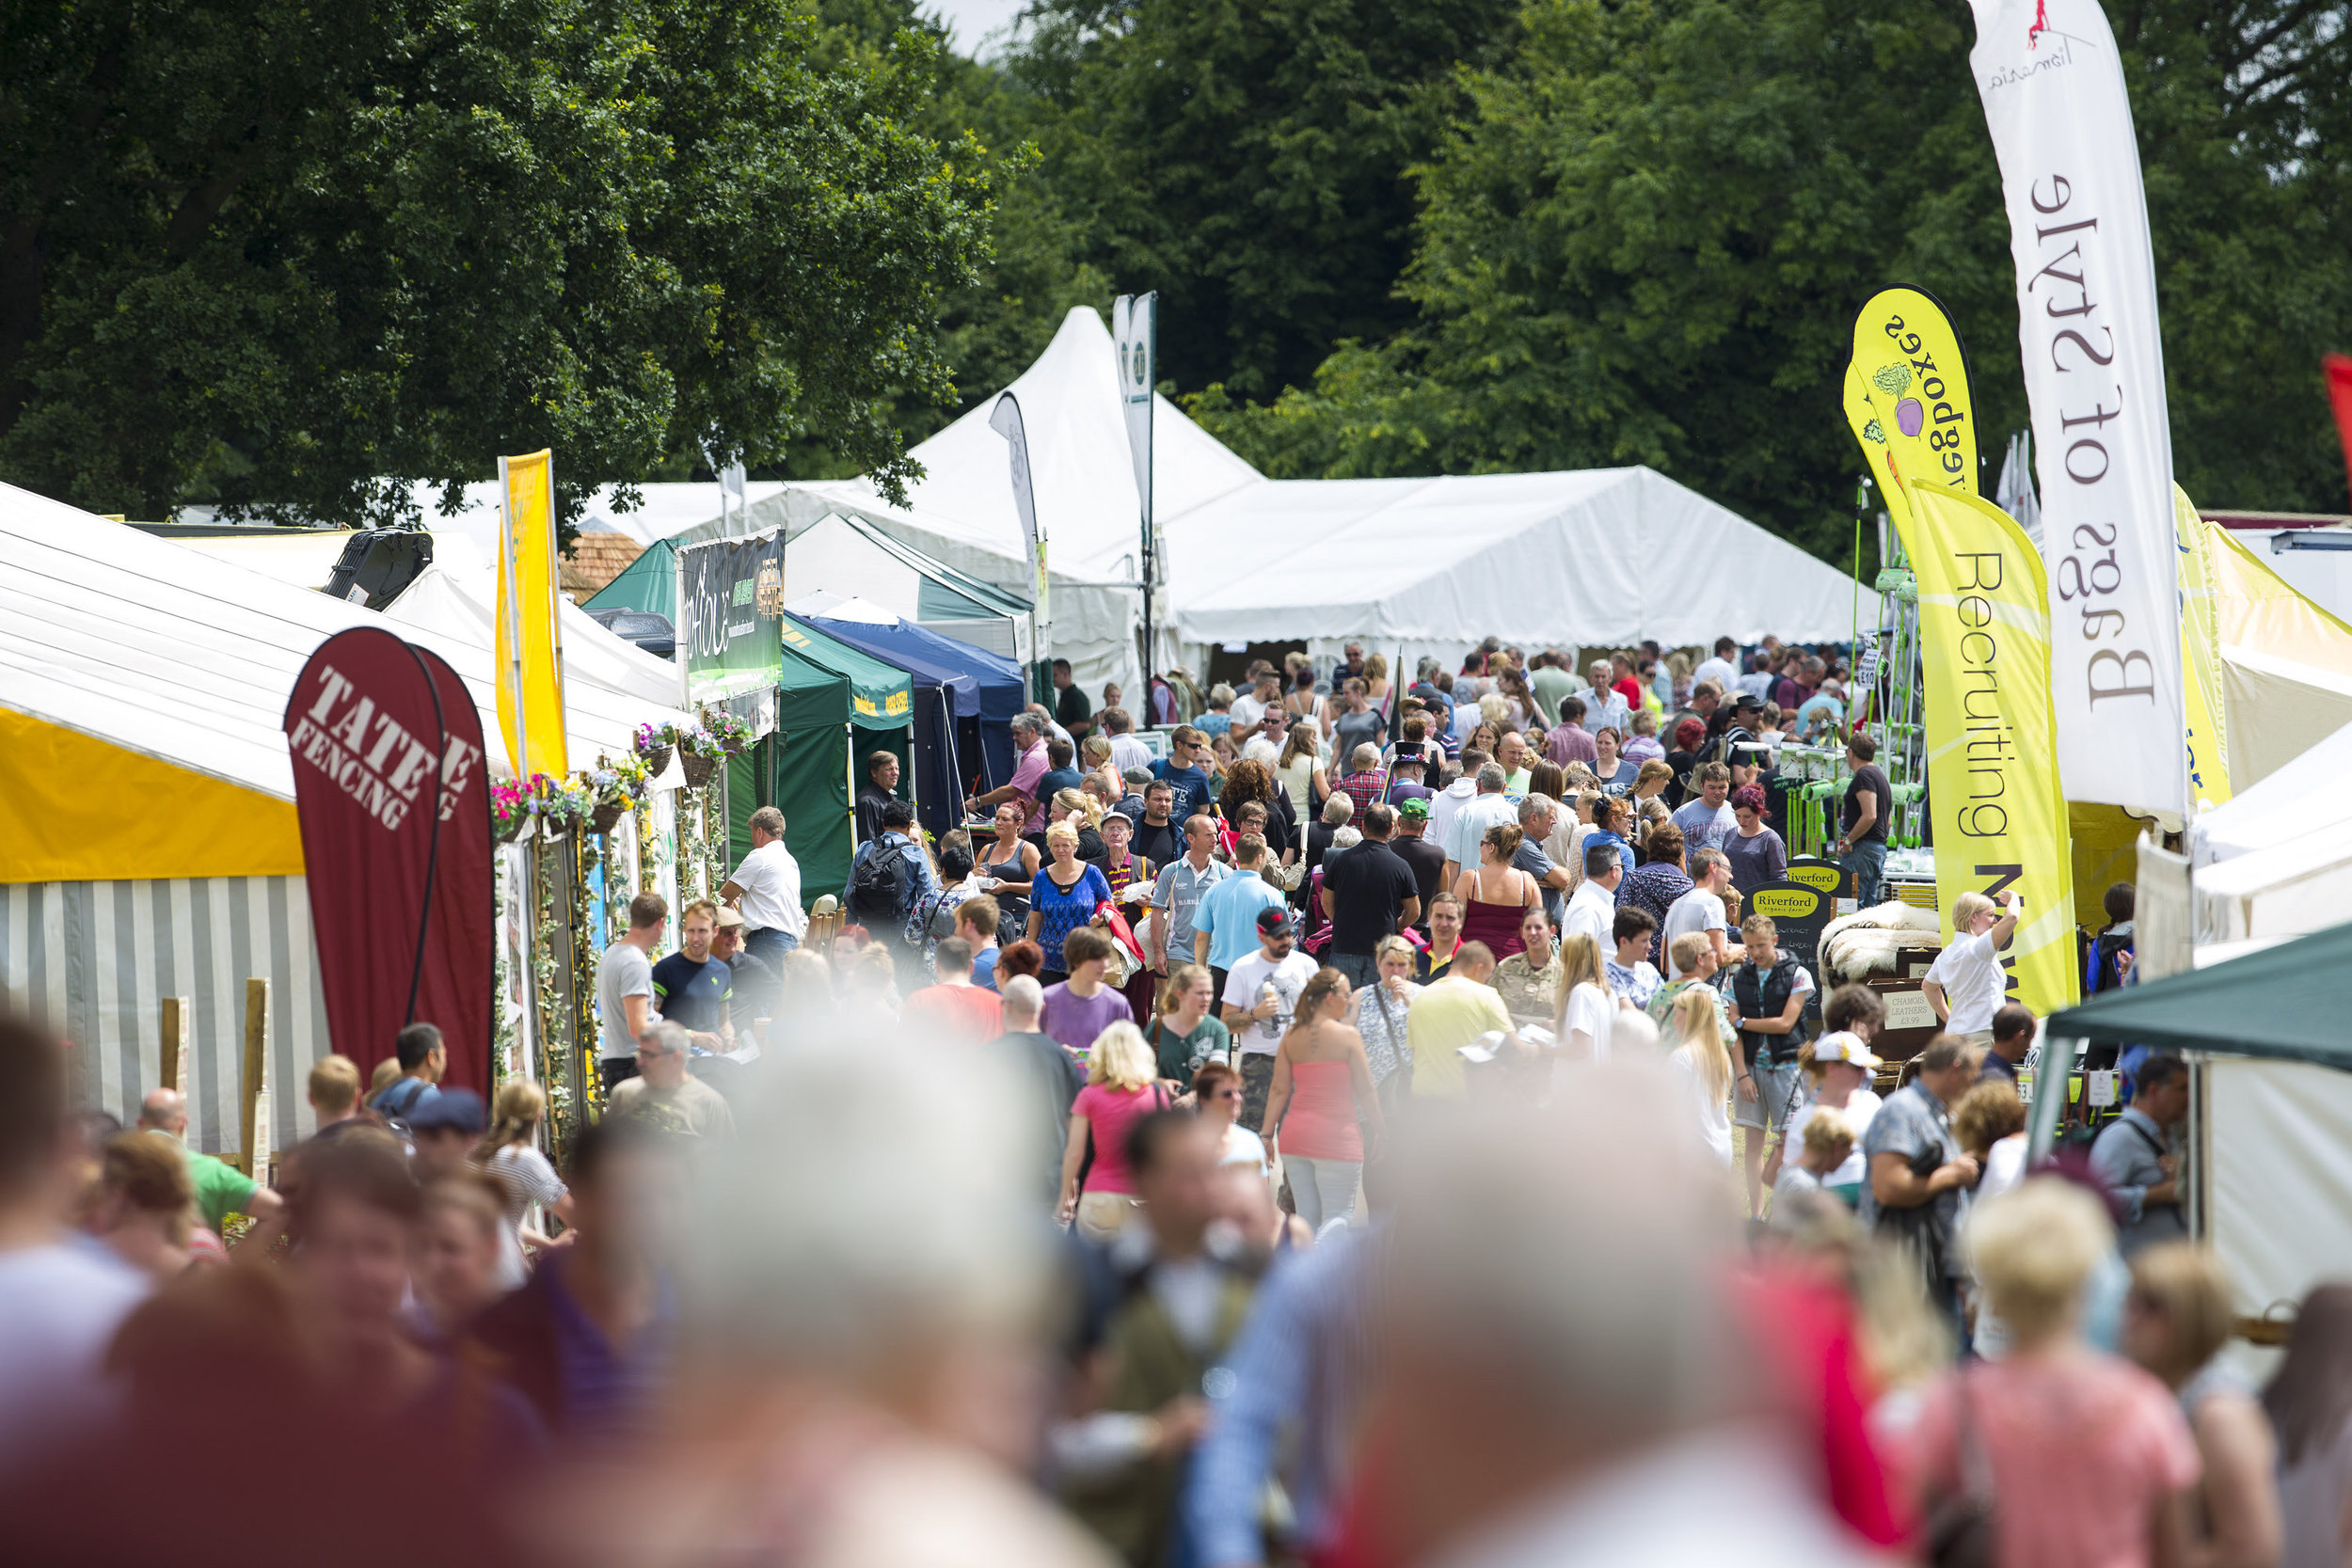 "kent county show - kent showground - Friday 5th - Sunday 7th July 2019Having never exhibited in Kent before we thought what better place to start than the Kent County Show? We can't wait to bring our Cherry Blossom products to the 'Garden of England'.""For those who have never attended the Show before, the Kent County Show is a showcase event for farming, countryside and rural life. The three day event brings together the very best of Kent with animals and food, fun and excitement and above all a sense of what 'The Garden of England' has to offer.""Get your tickets here."